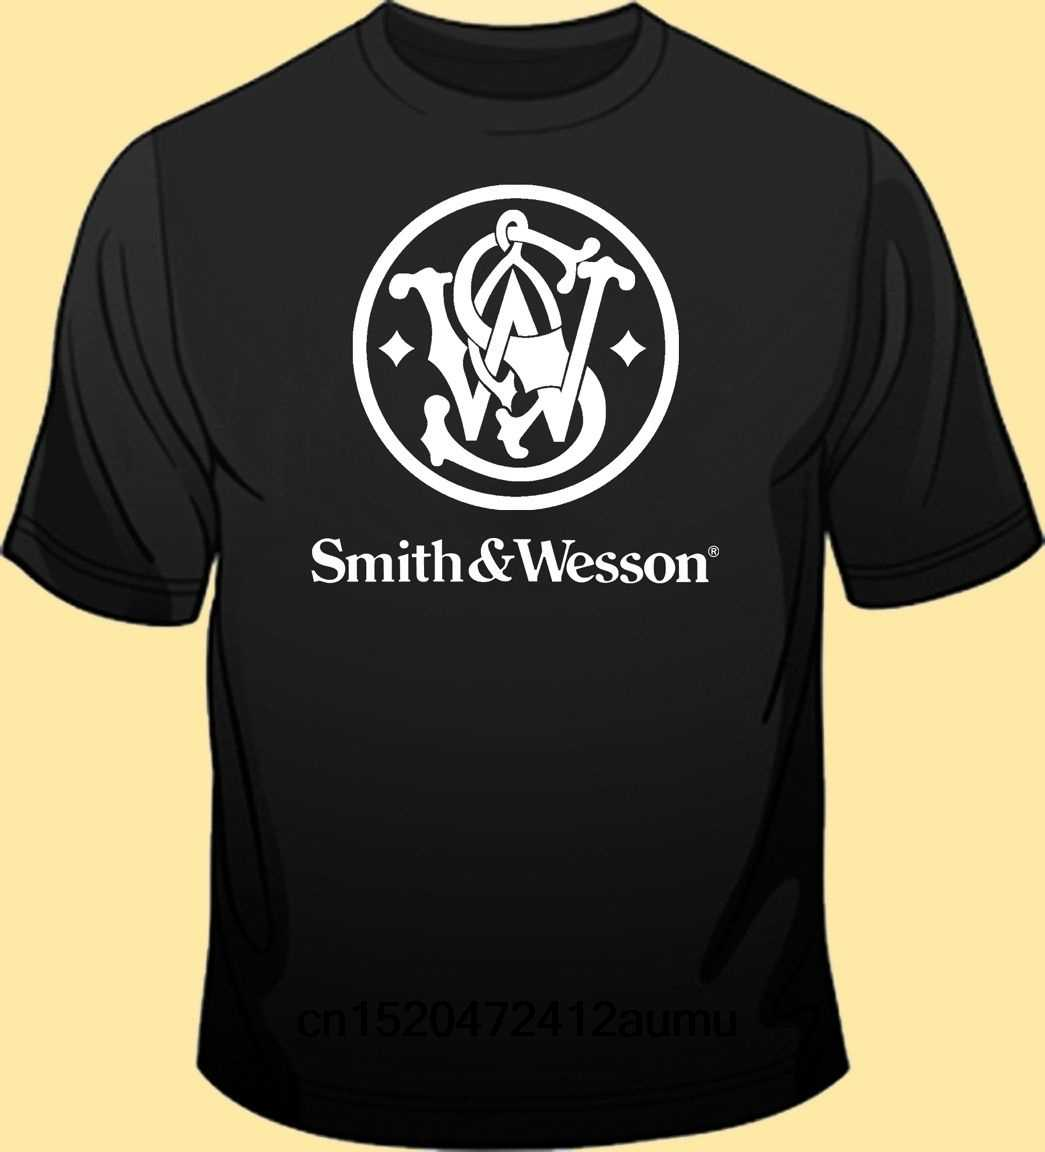 Smith  amp Wesson Mens T-shirt Round Neck Fashion Tee Shirt Casual Top Clothing Fashion Mens Hip Hop T Shirt